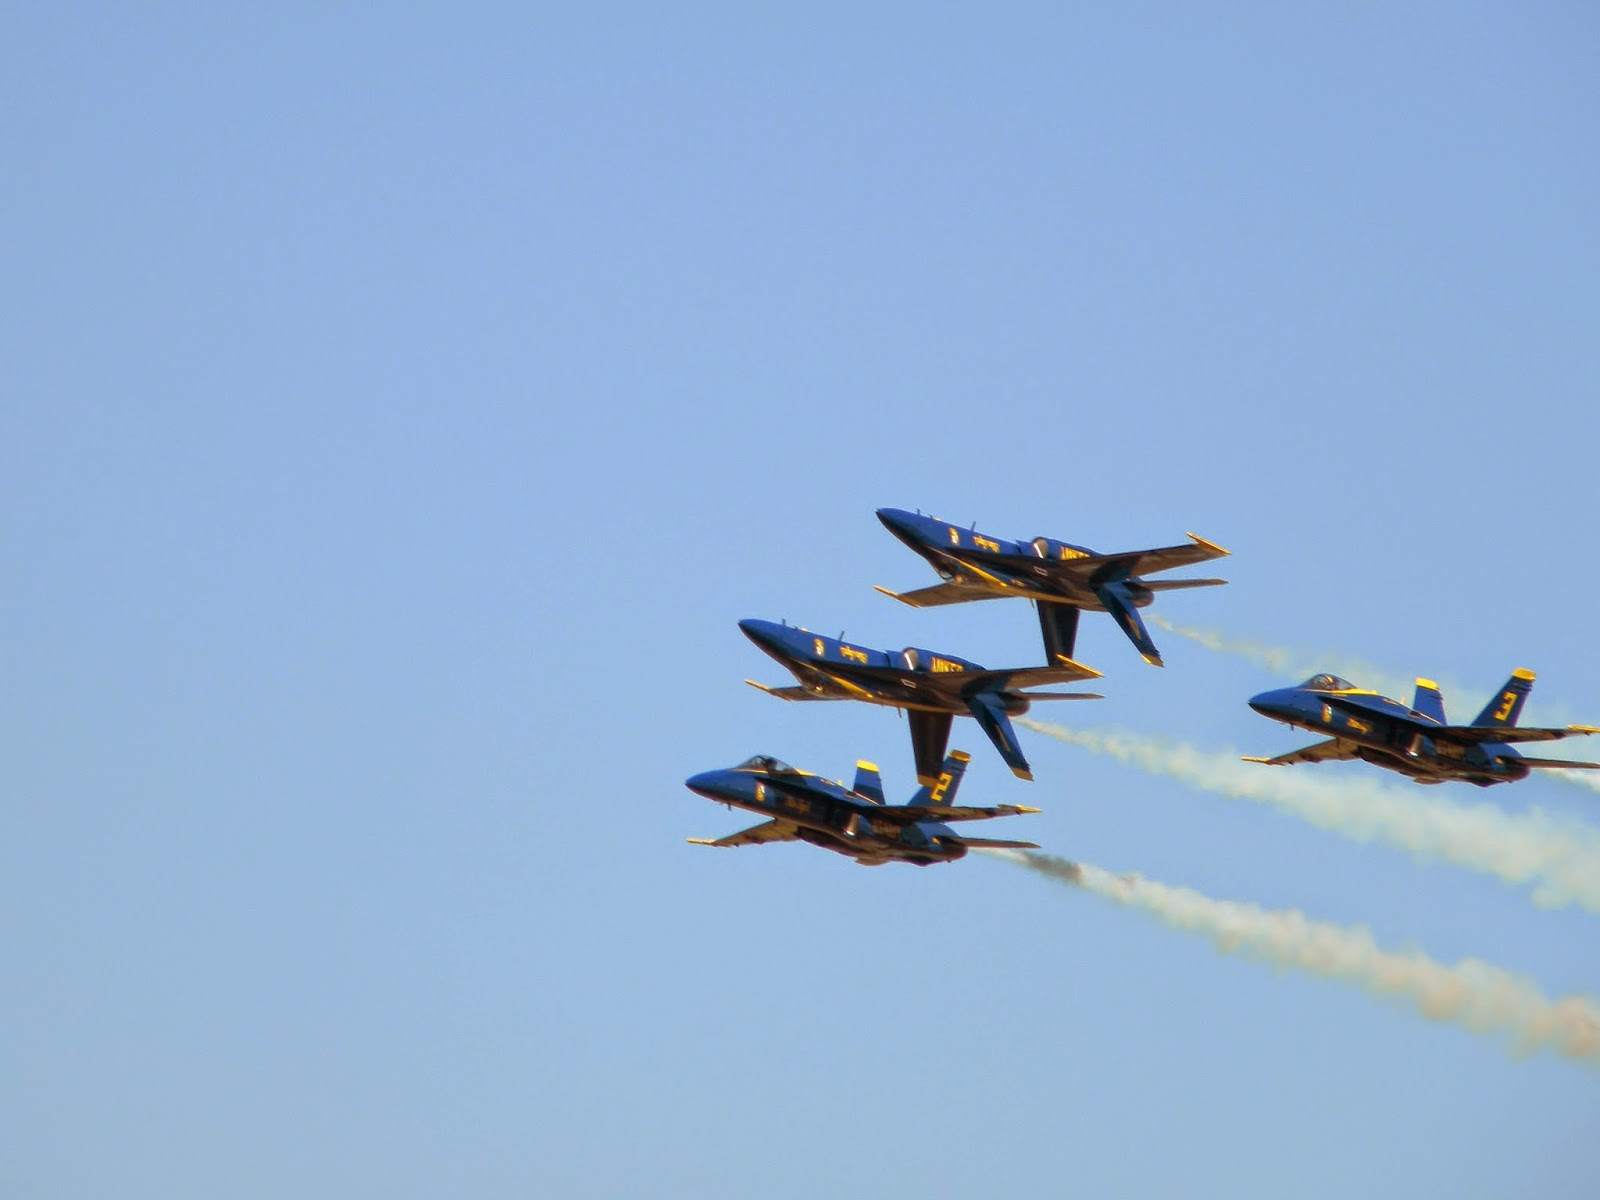 Blue Angels inverted